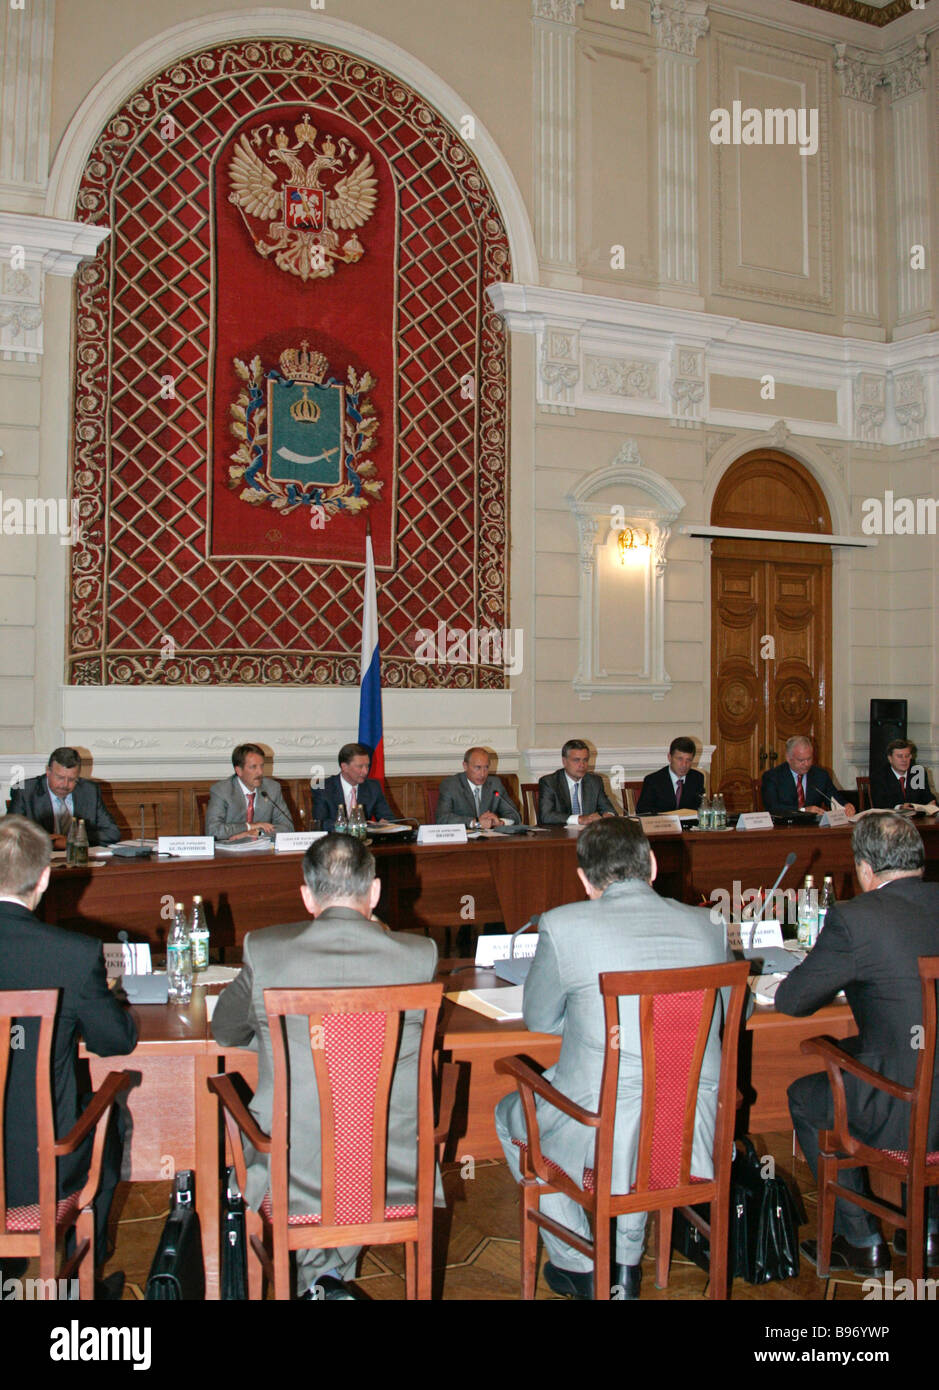 August 31 2007 A meeting of the State Council presidium in Astrakhan - Stock Image